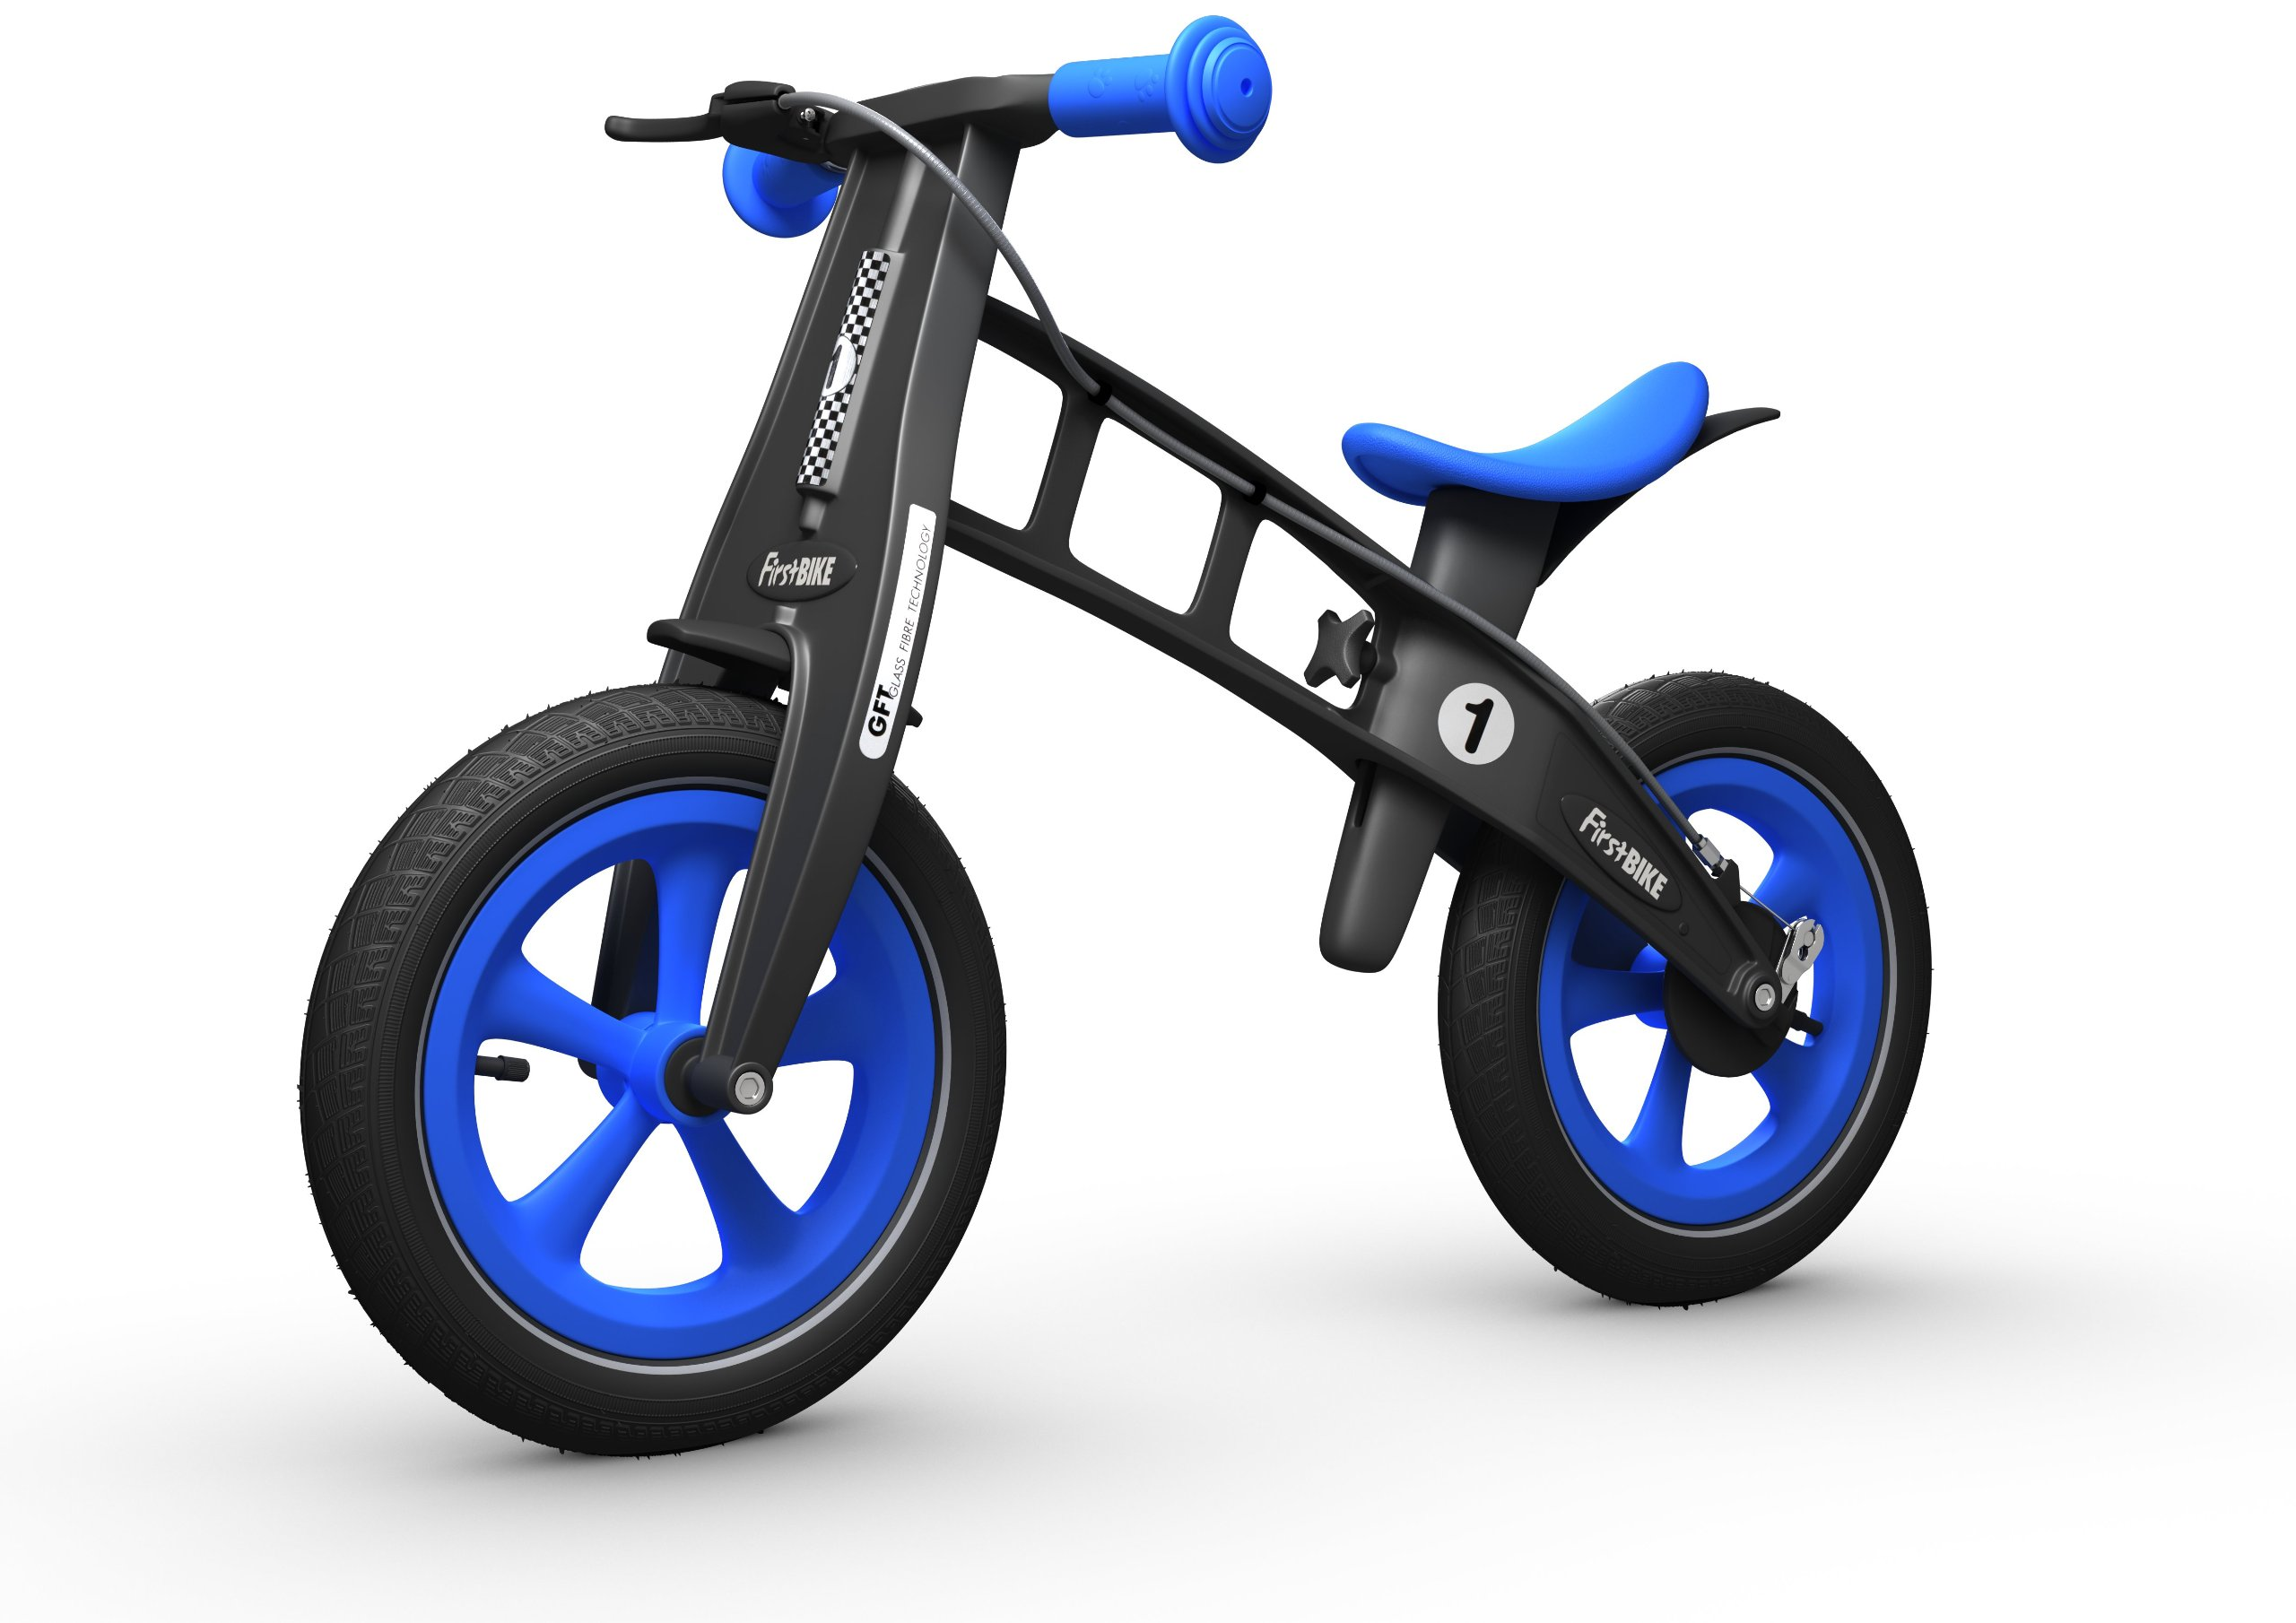 FirstBIKE Limited Edition Balance Bike with Brake, Blue - for Kids & Toddlers Ages 2,3,4,5